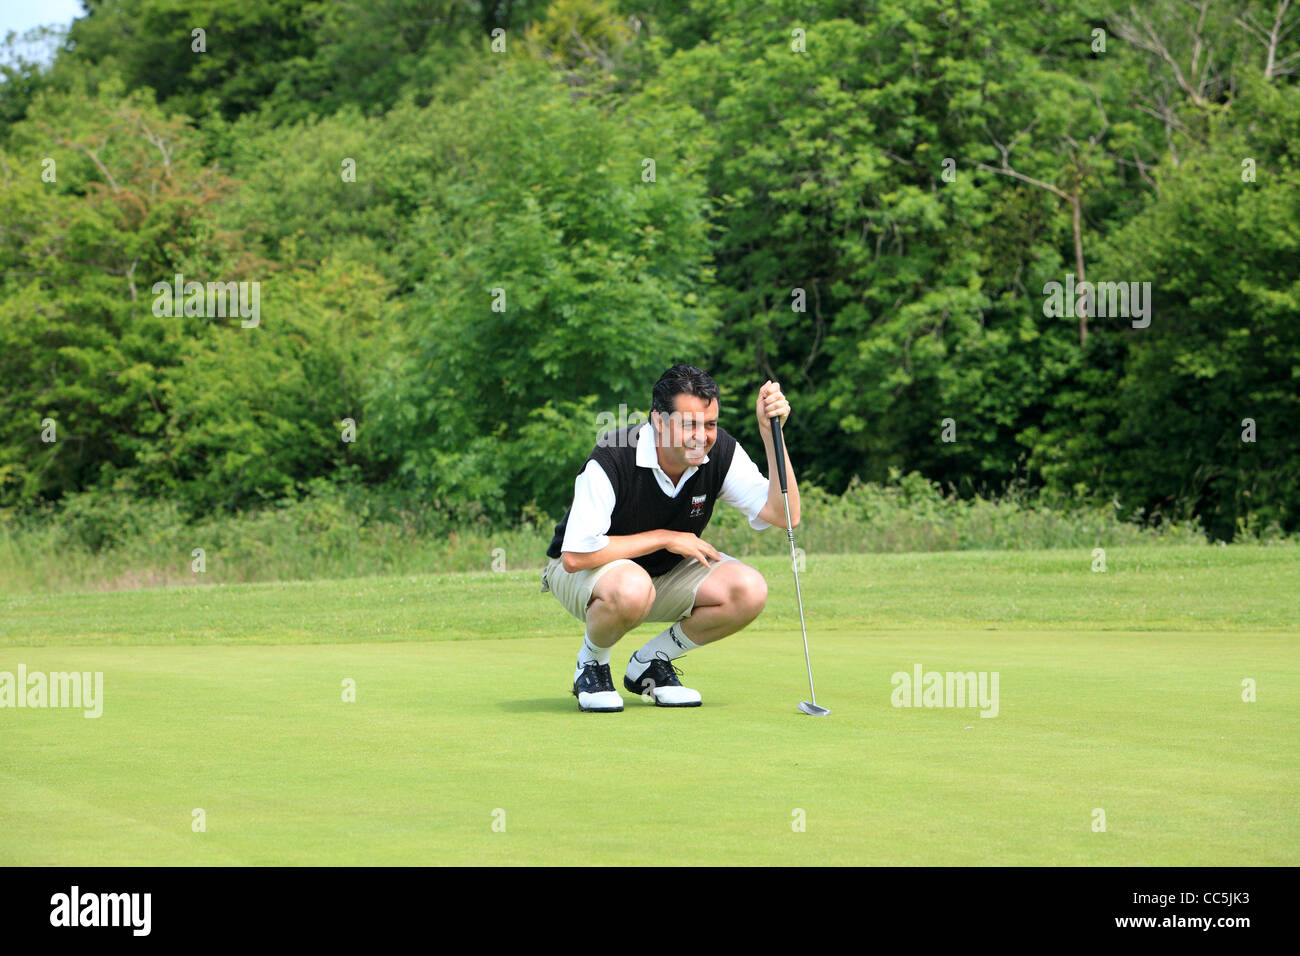 Golfer lining up his putt on the green - Stock Image